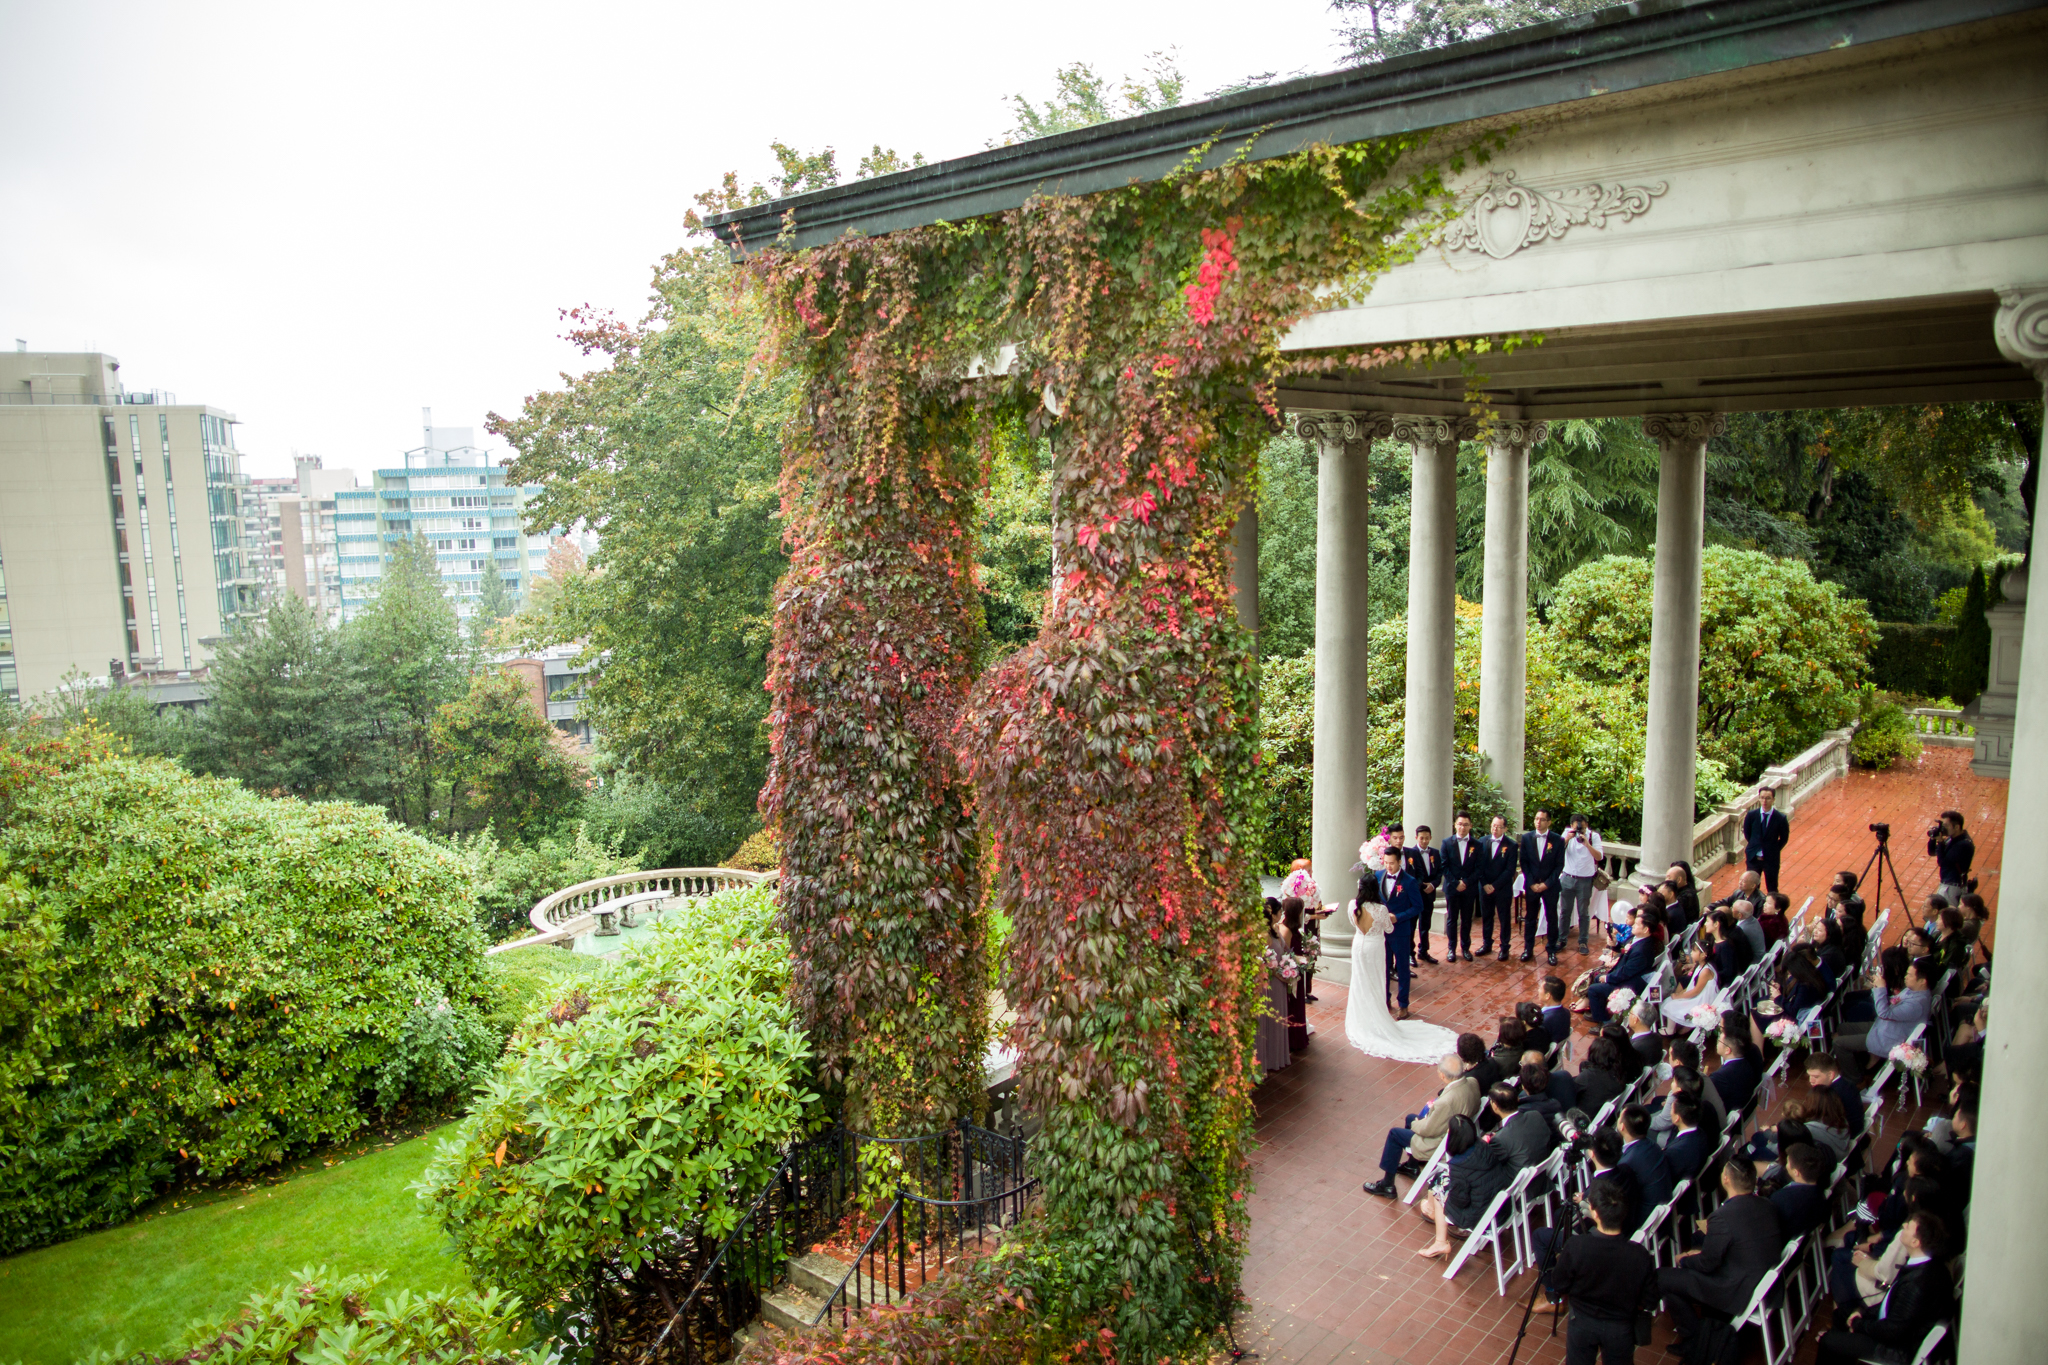 looking out the second floor window of Hycroft Manor while a beautiful wedding ceremony is happening under the canopy